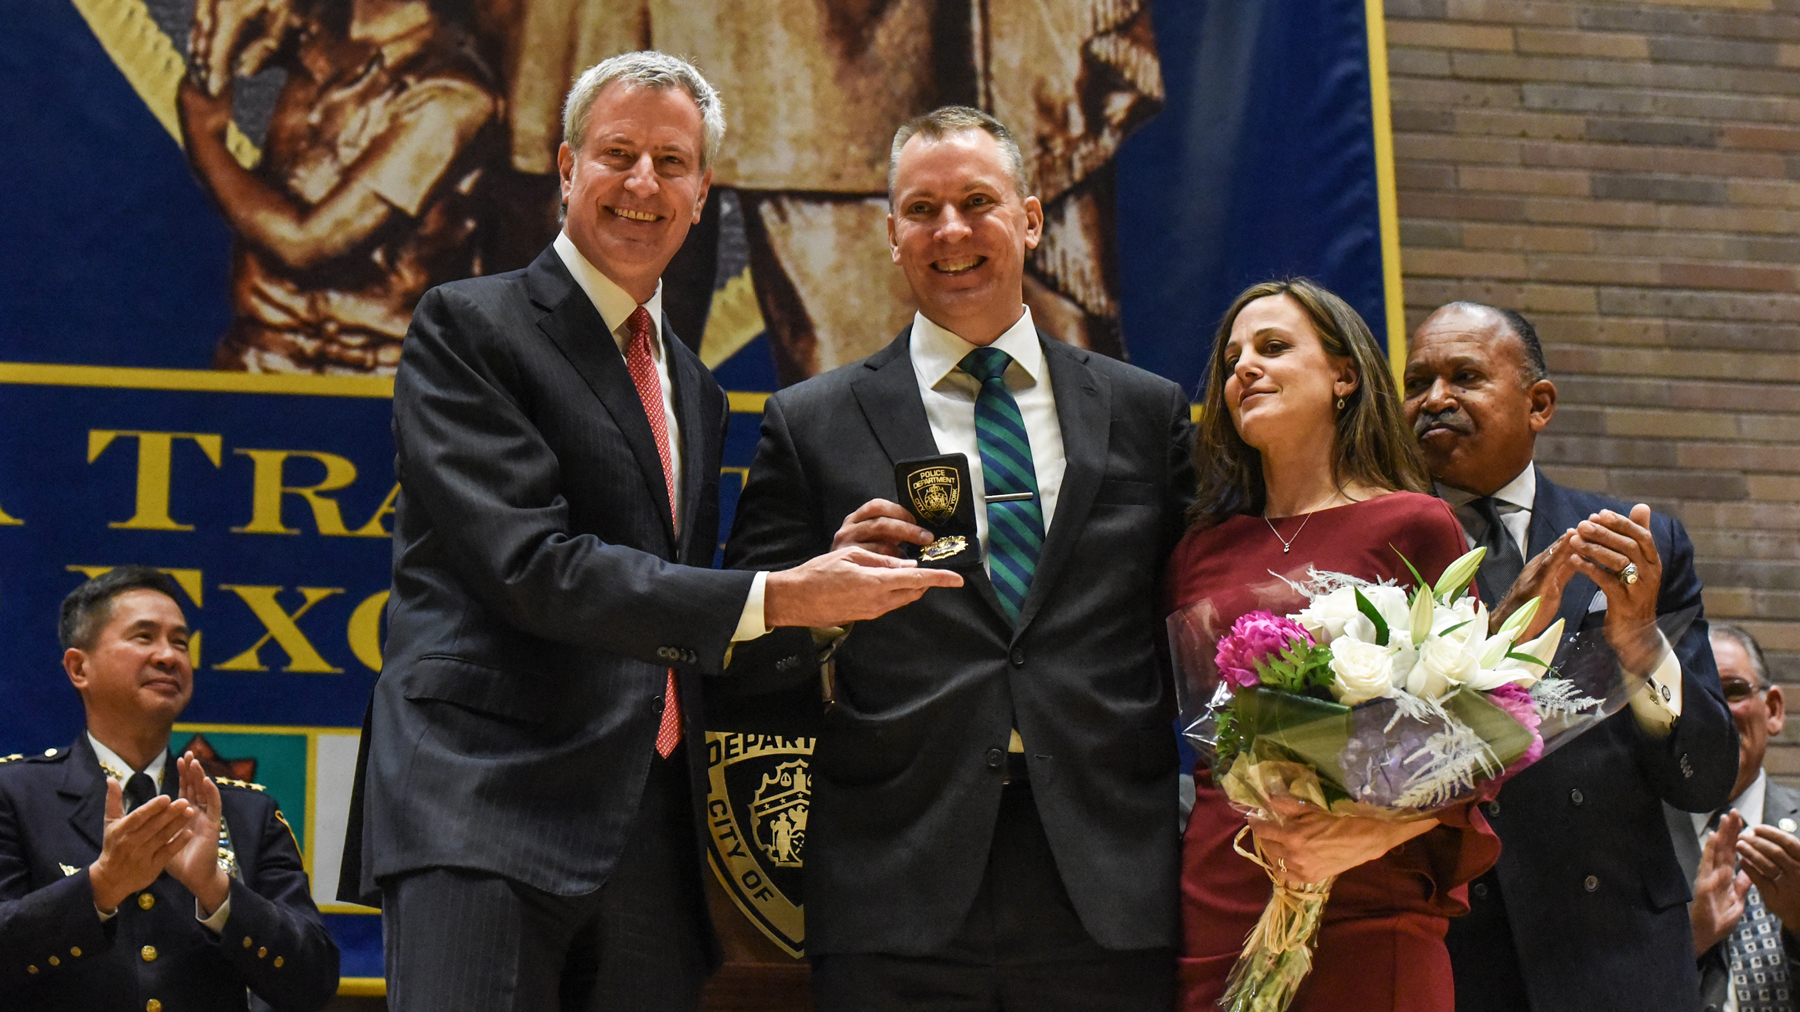 NEW YORK, NY - DECEMBER 02: Dermot Shea (C) poses after being sworn in as the new NYPD Police Commissioner while standing next to the Bill de Blasio, Mayor of New York City, (L) on December 2, 2019 in New York City. Dermot Shea is the 44th commissioner of New York City following a three year term of James P. O'Neill. (Photo by Stephanie Keith/Getty Images)